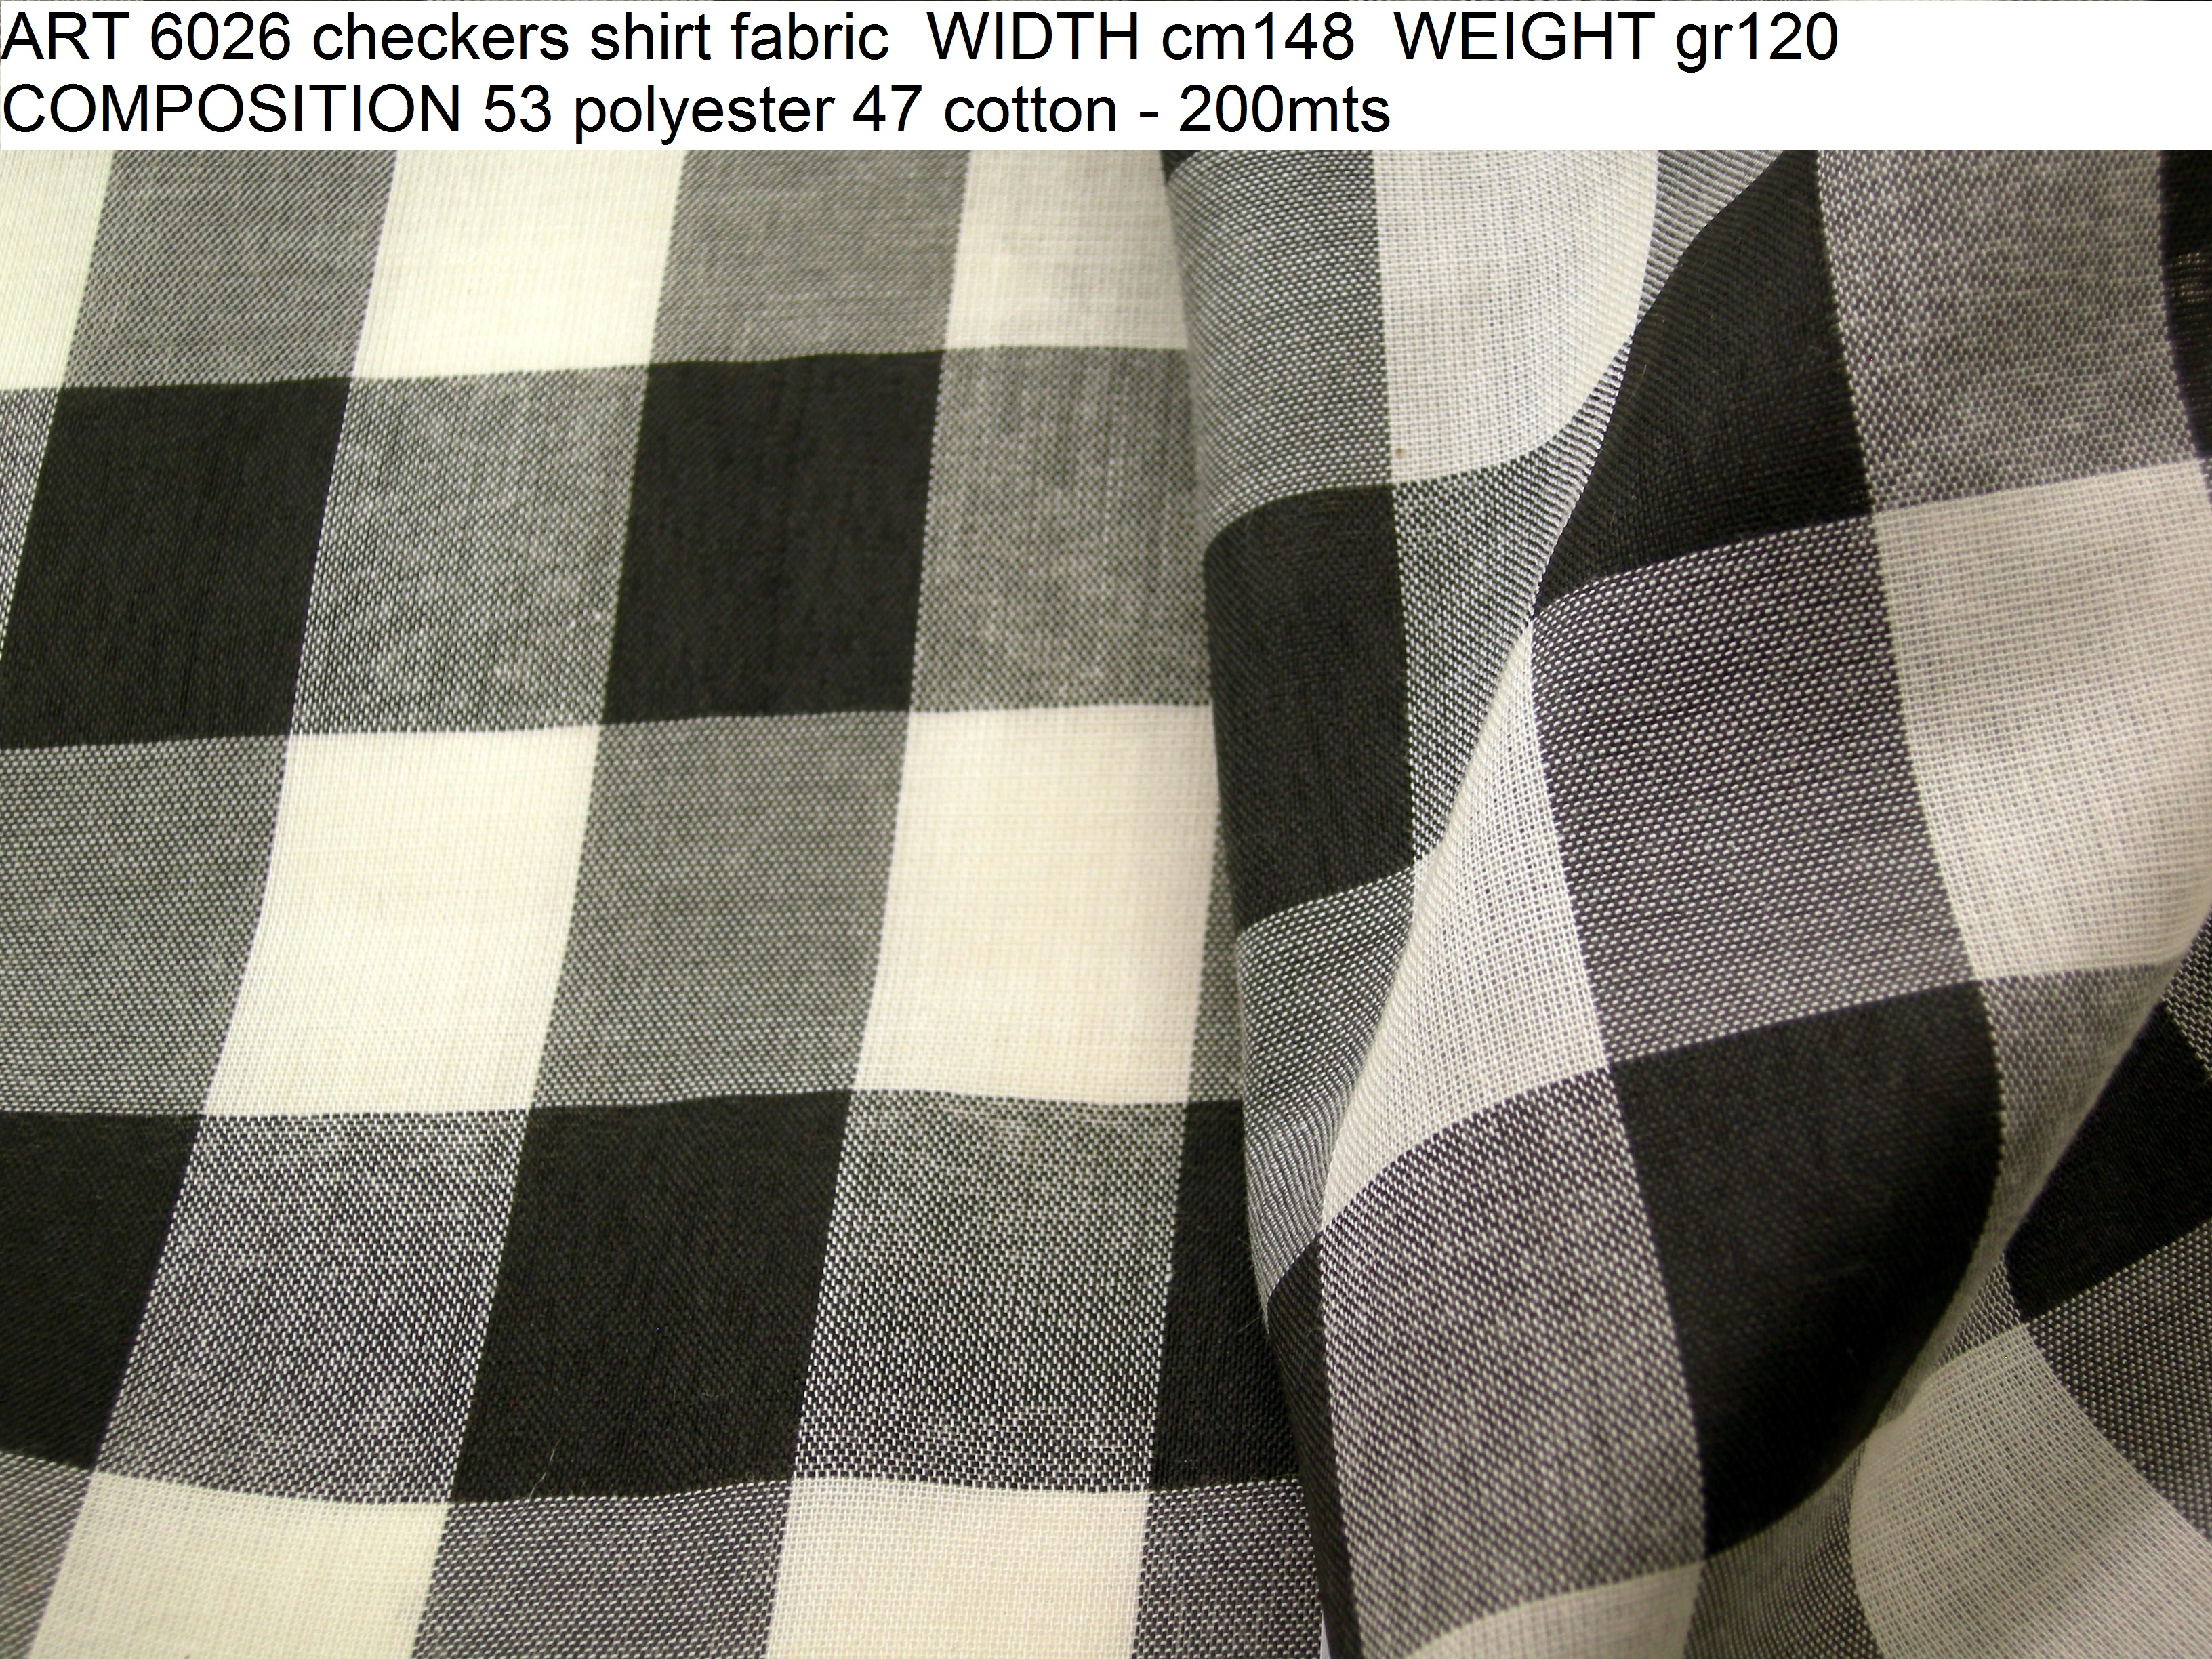 ART 6026 checkers shirt fabric WIDTH cm148 WEIGHT gr120 COMPOSITION 53 polyester 47 cotton - 200mts